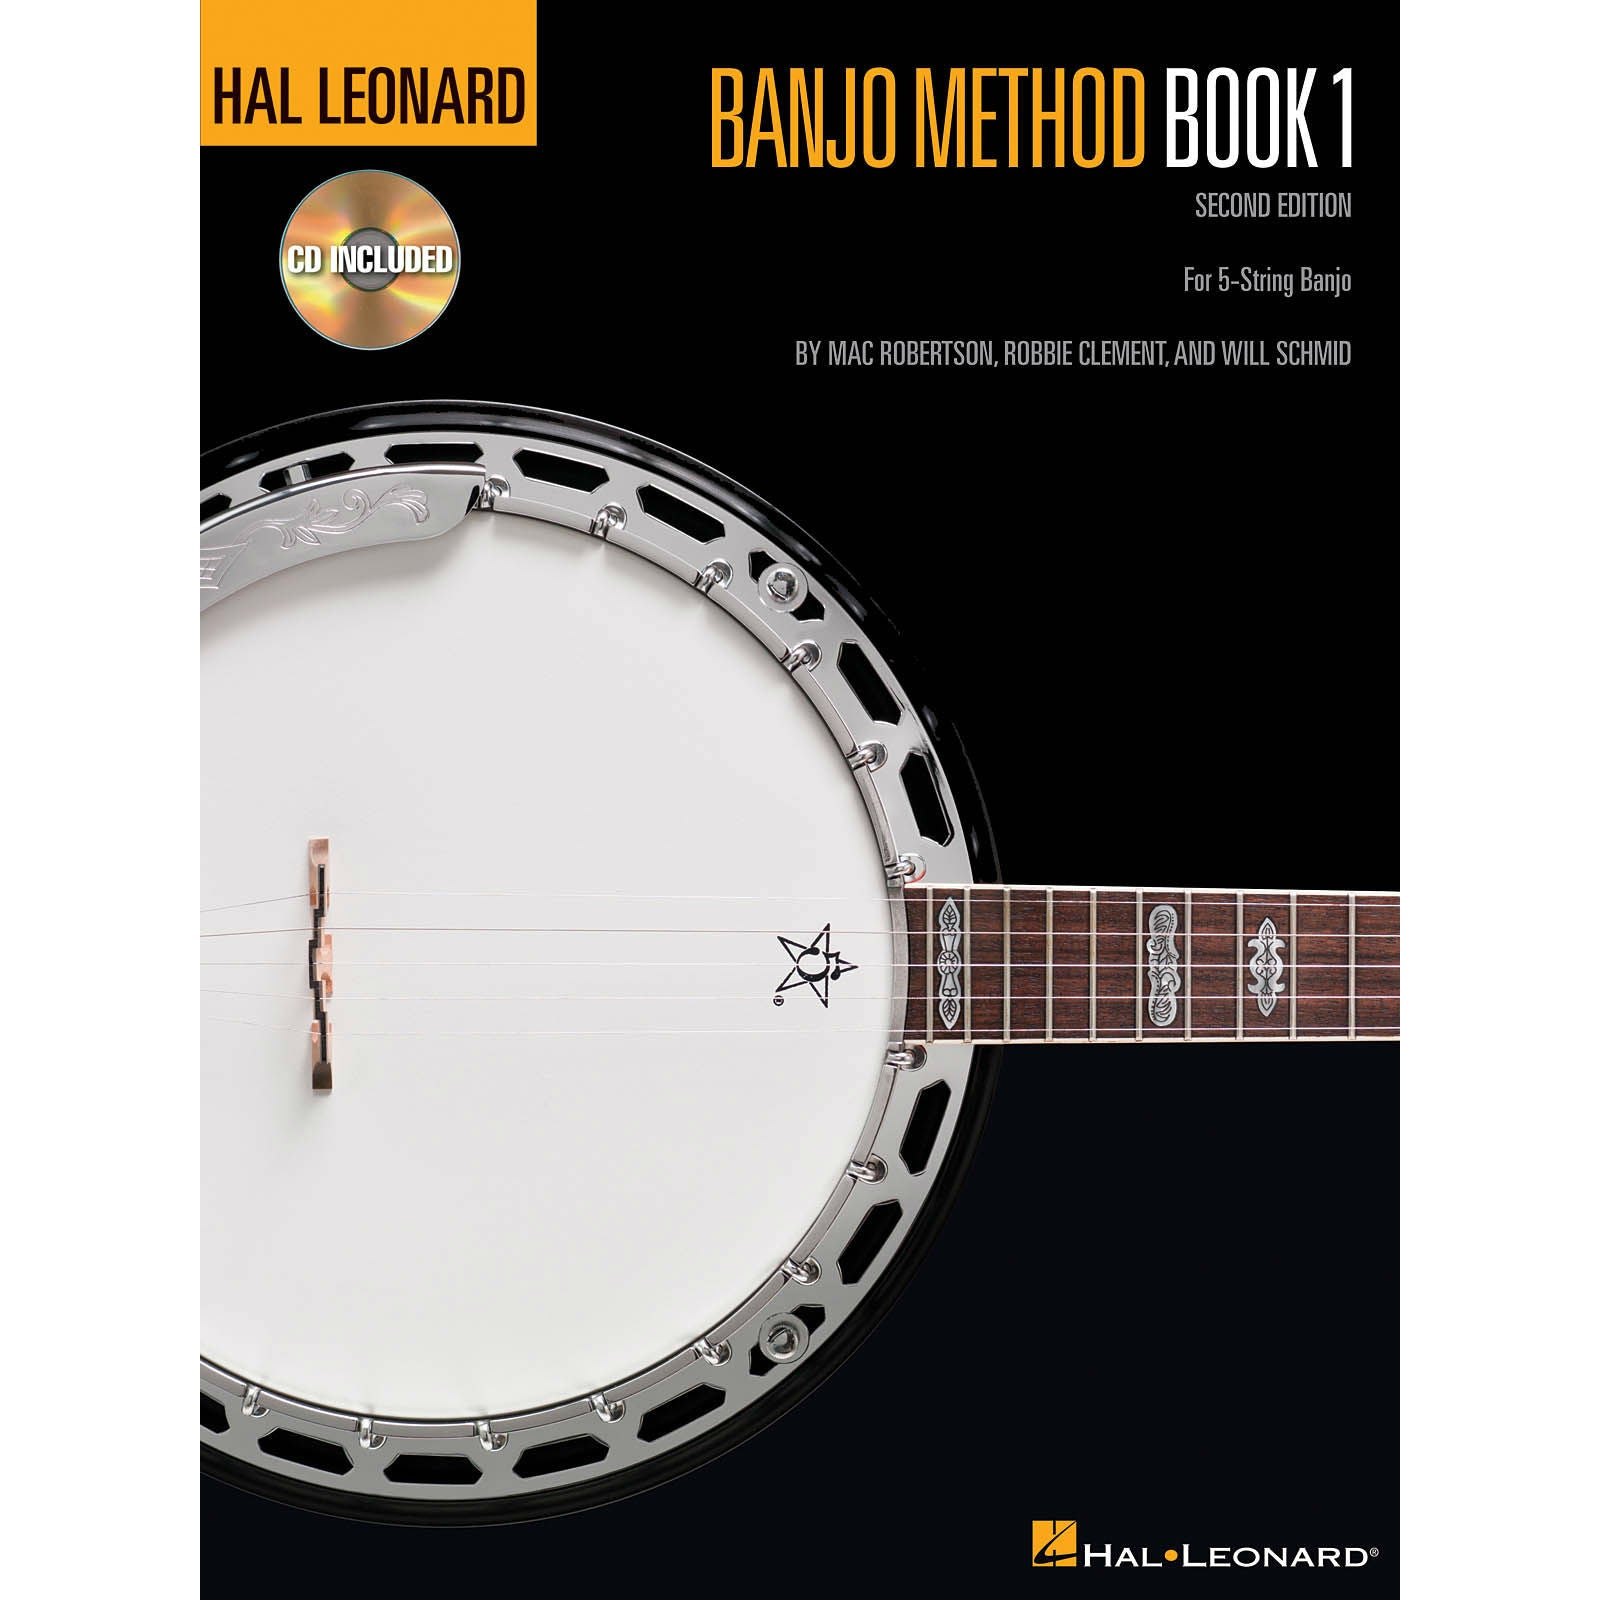 Banjo Method Book 1 (CD Included) : 2nd Edition